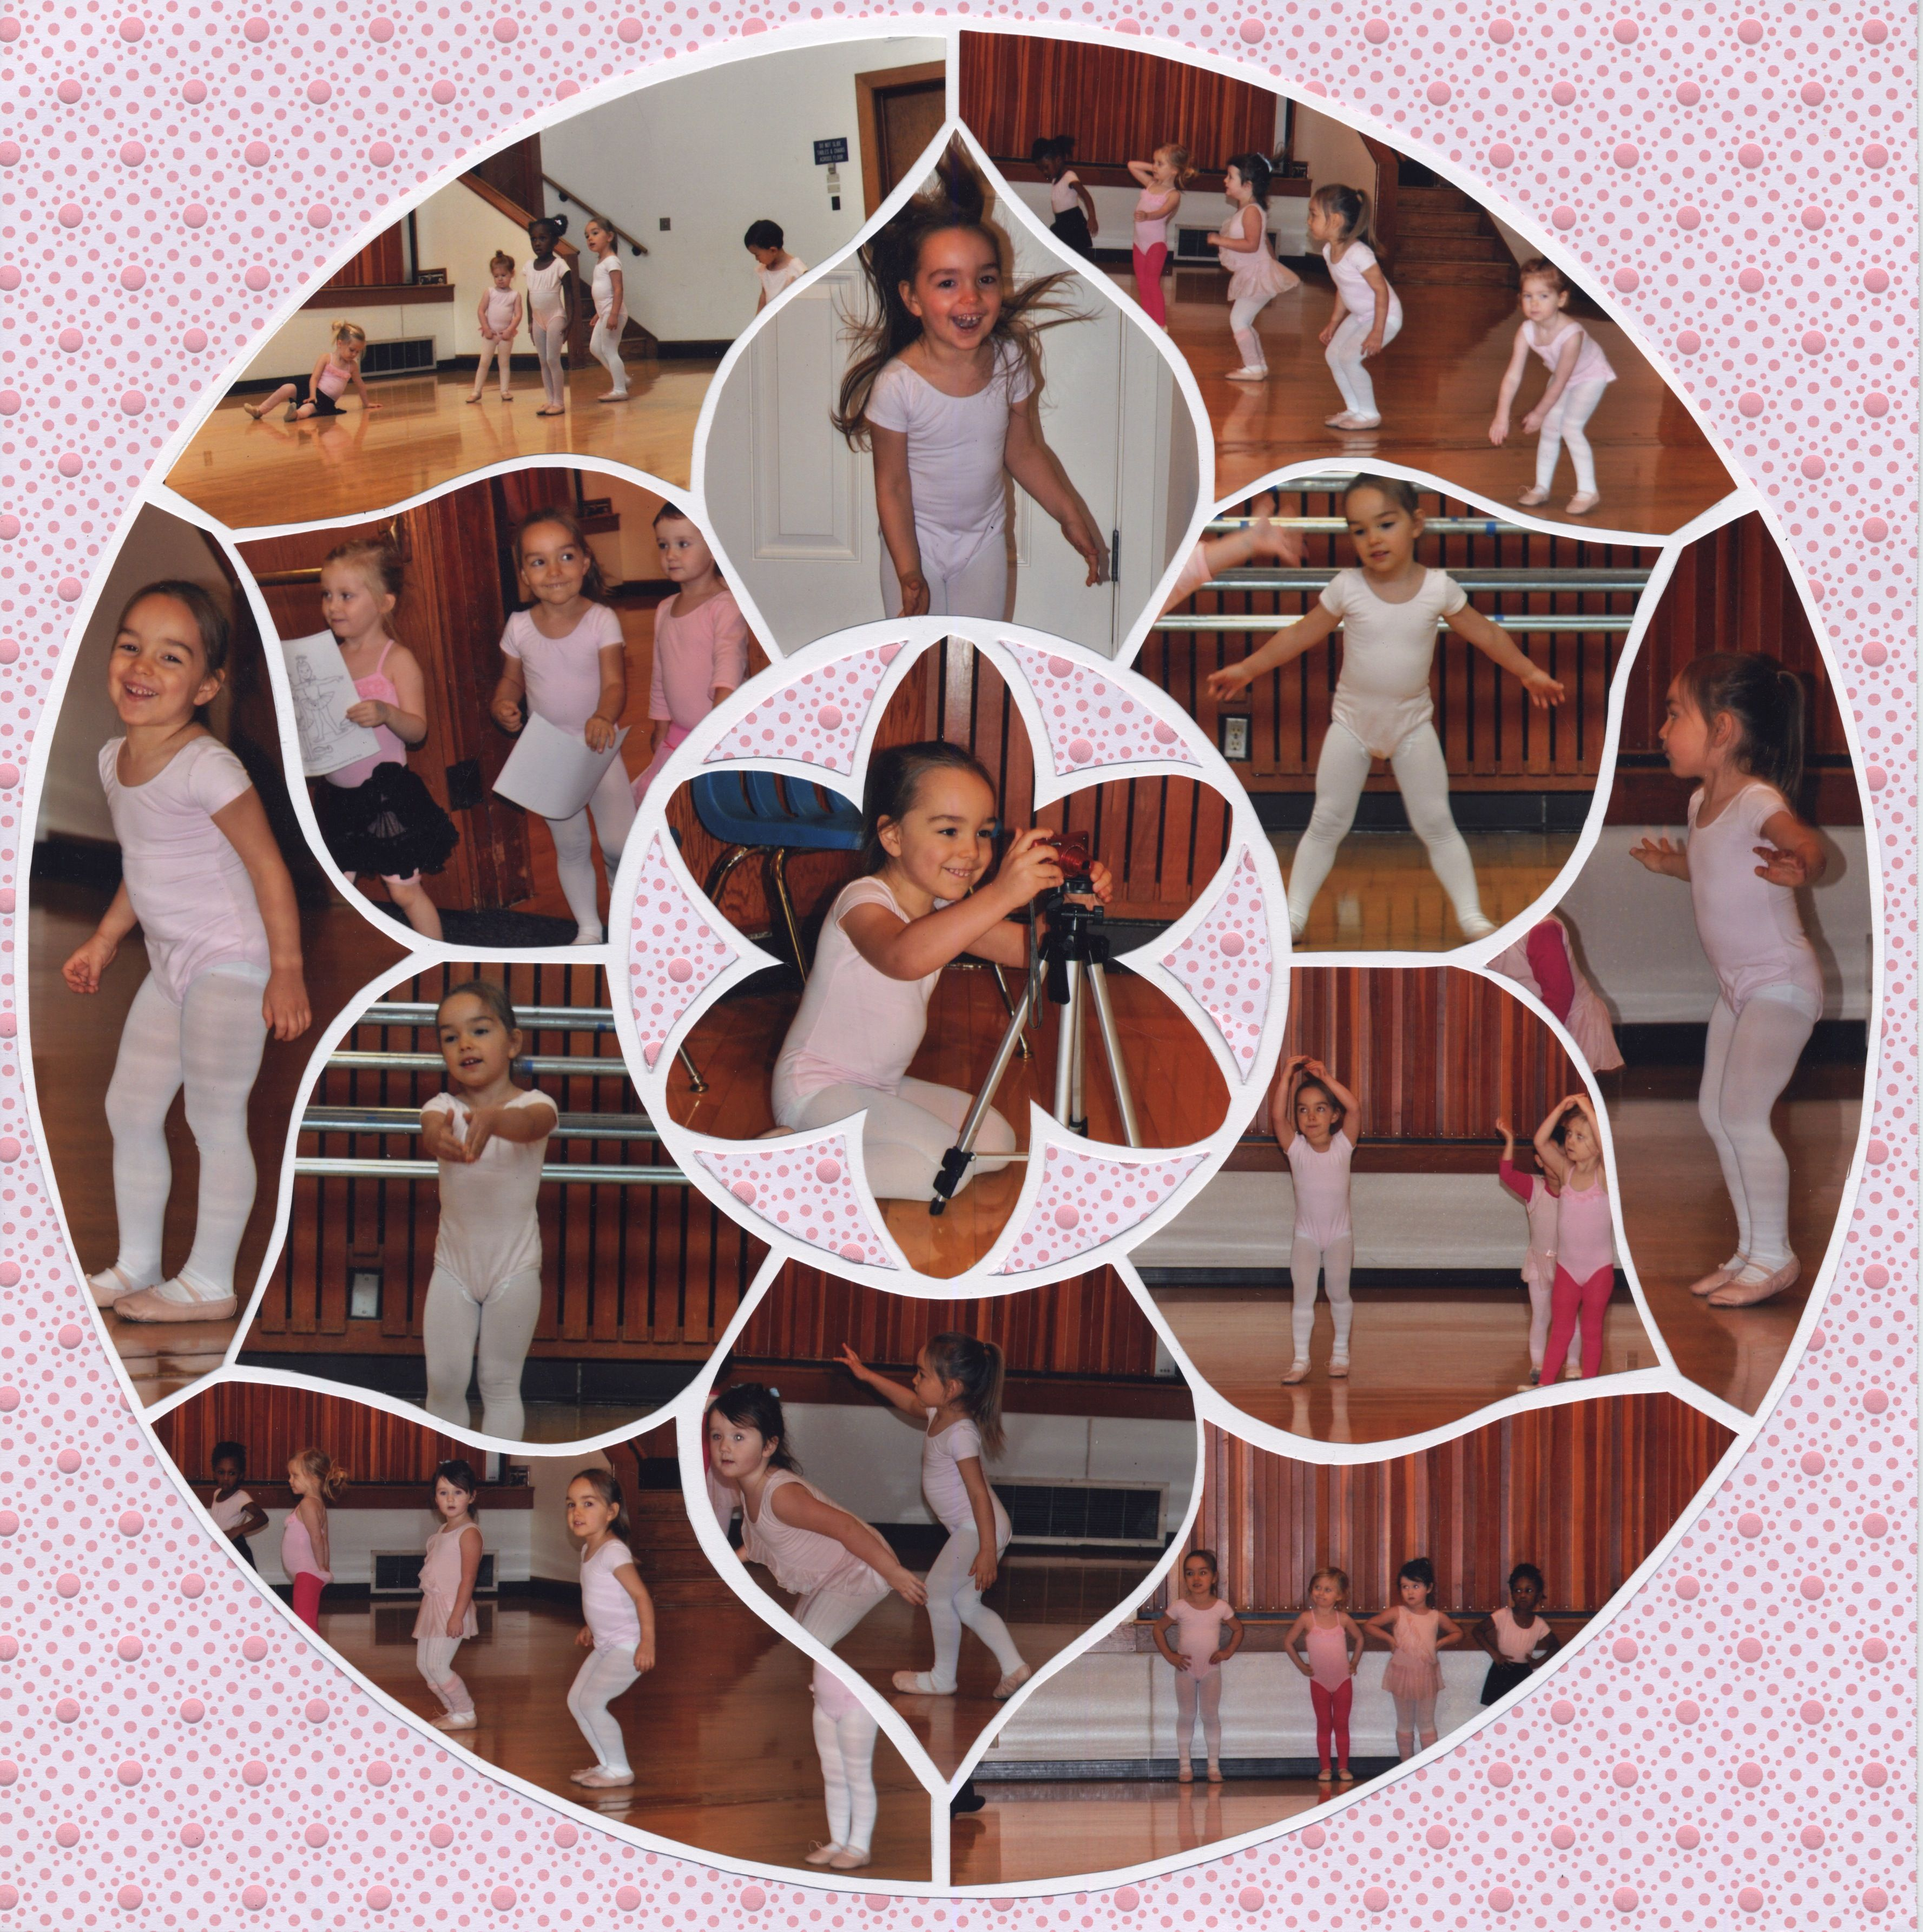 Photo Collage created by Anica, Lea France Designer using Rosette Stencil. #Photos #Collage #Designs #Stencils #PhotoCollage